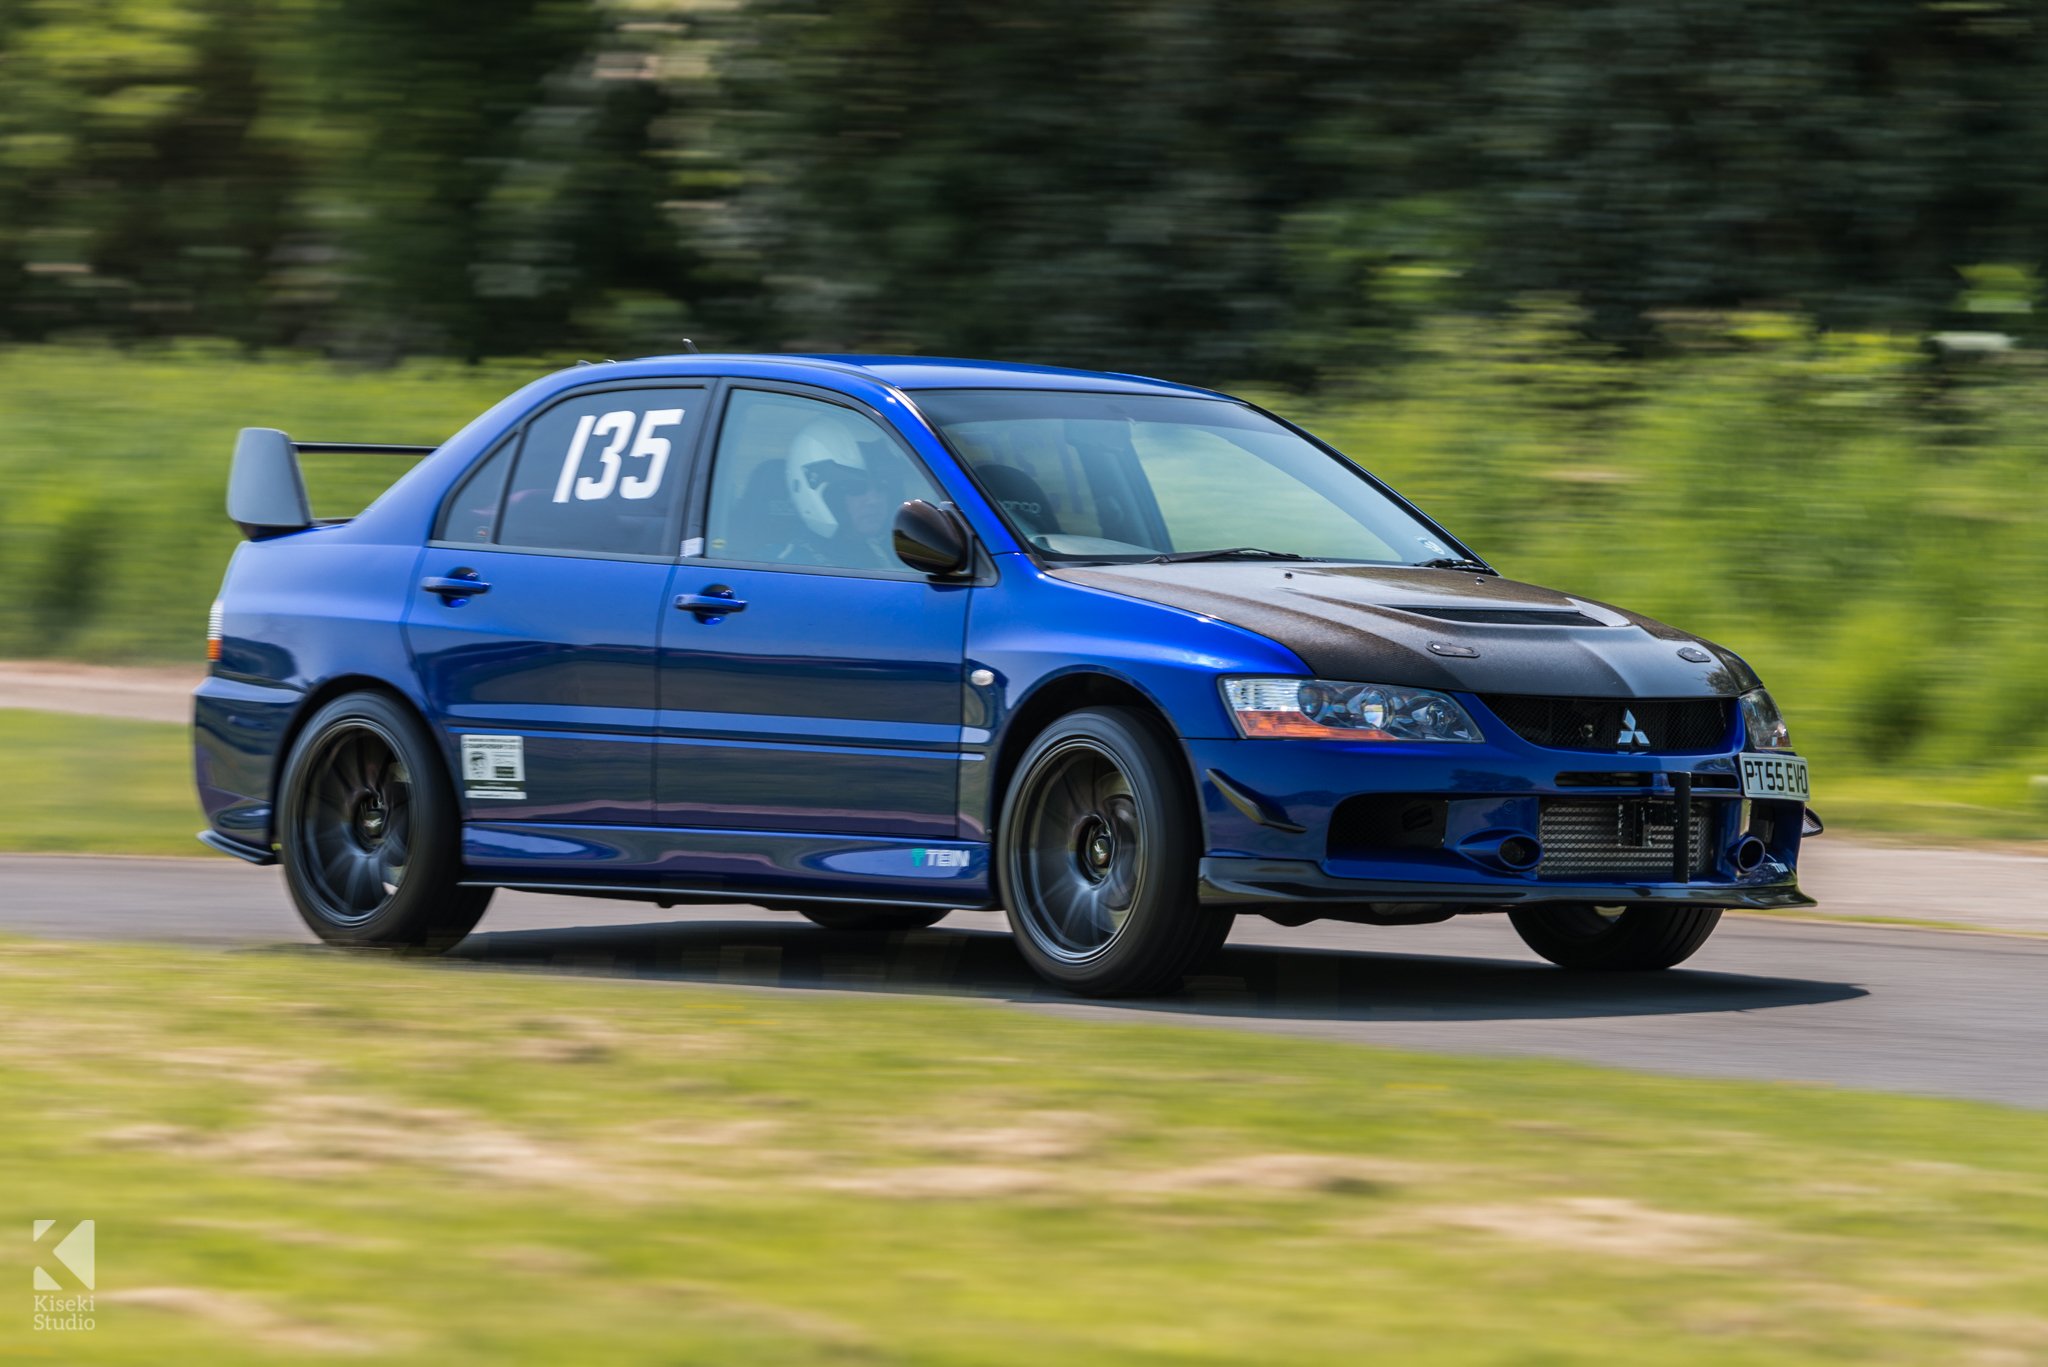 Mitsubishi Lancer Evolution 9 MR Harewood